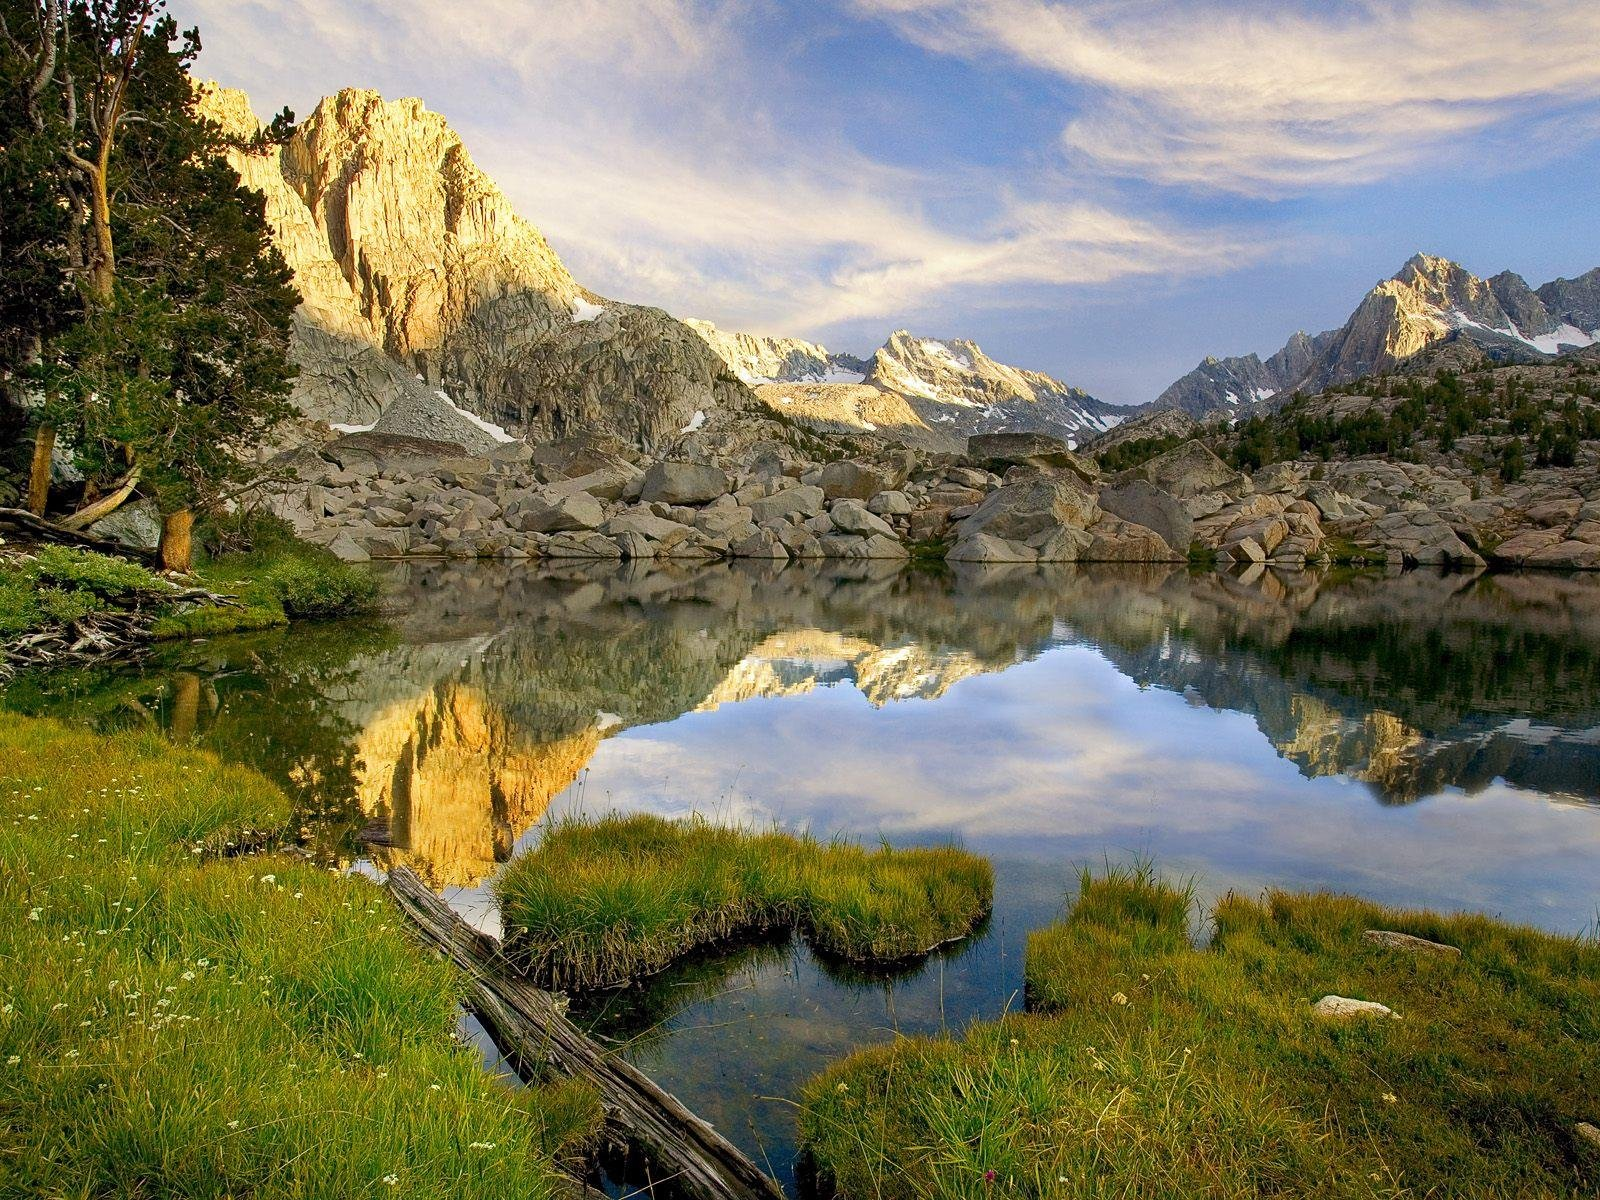 Sierra nevada mountains wallpaper download wallpapers page - Nevada wallpaper hd ...